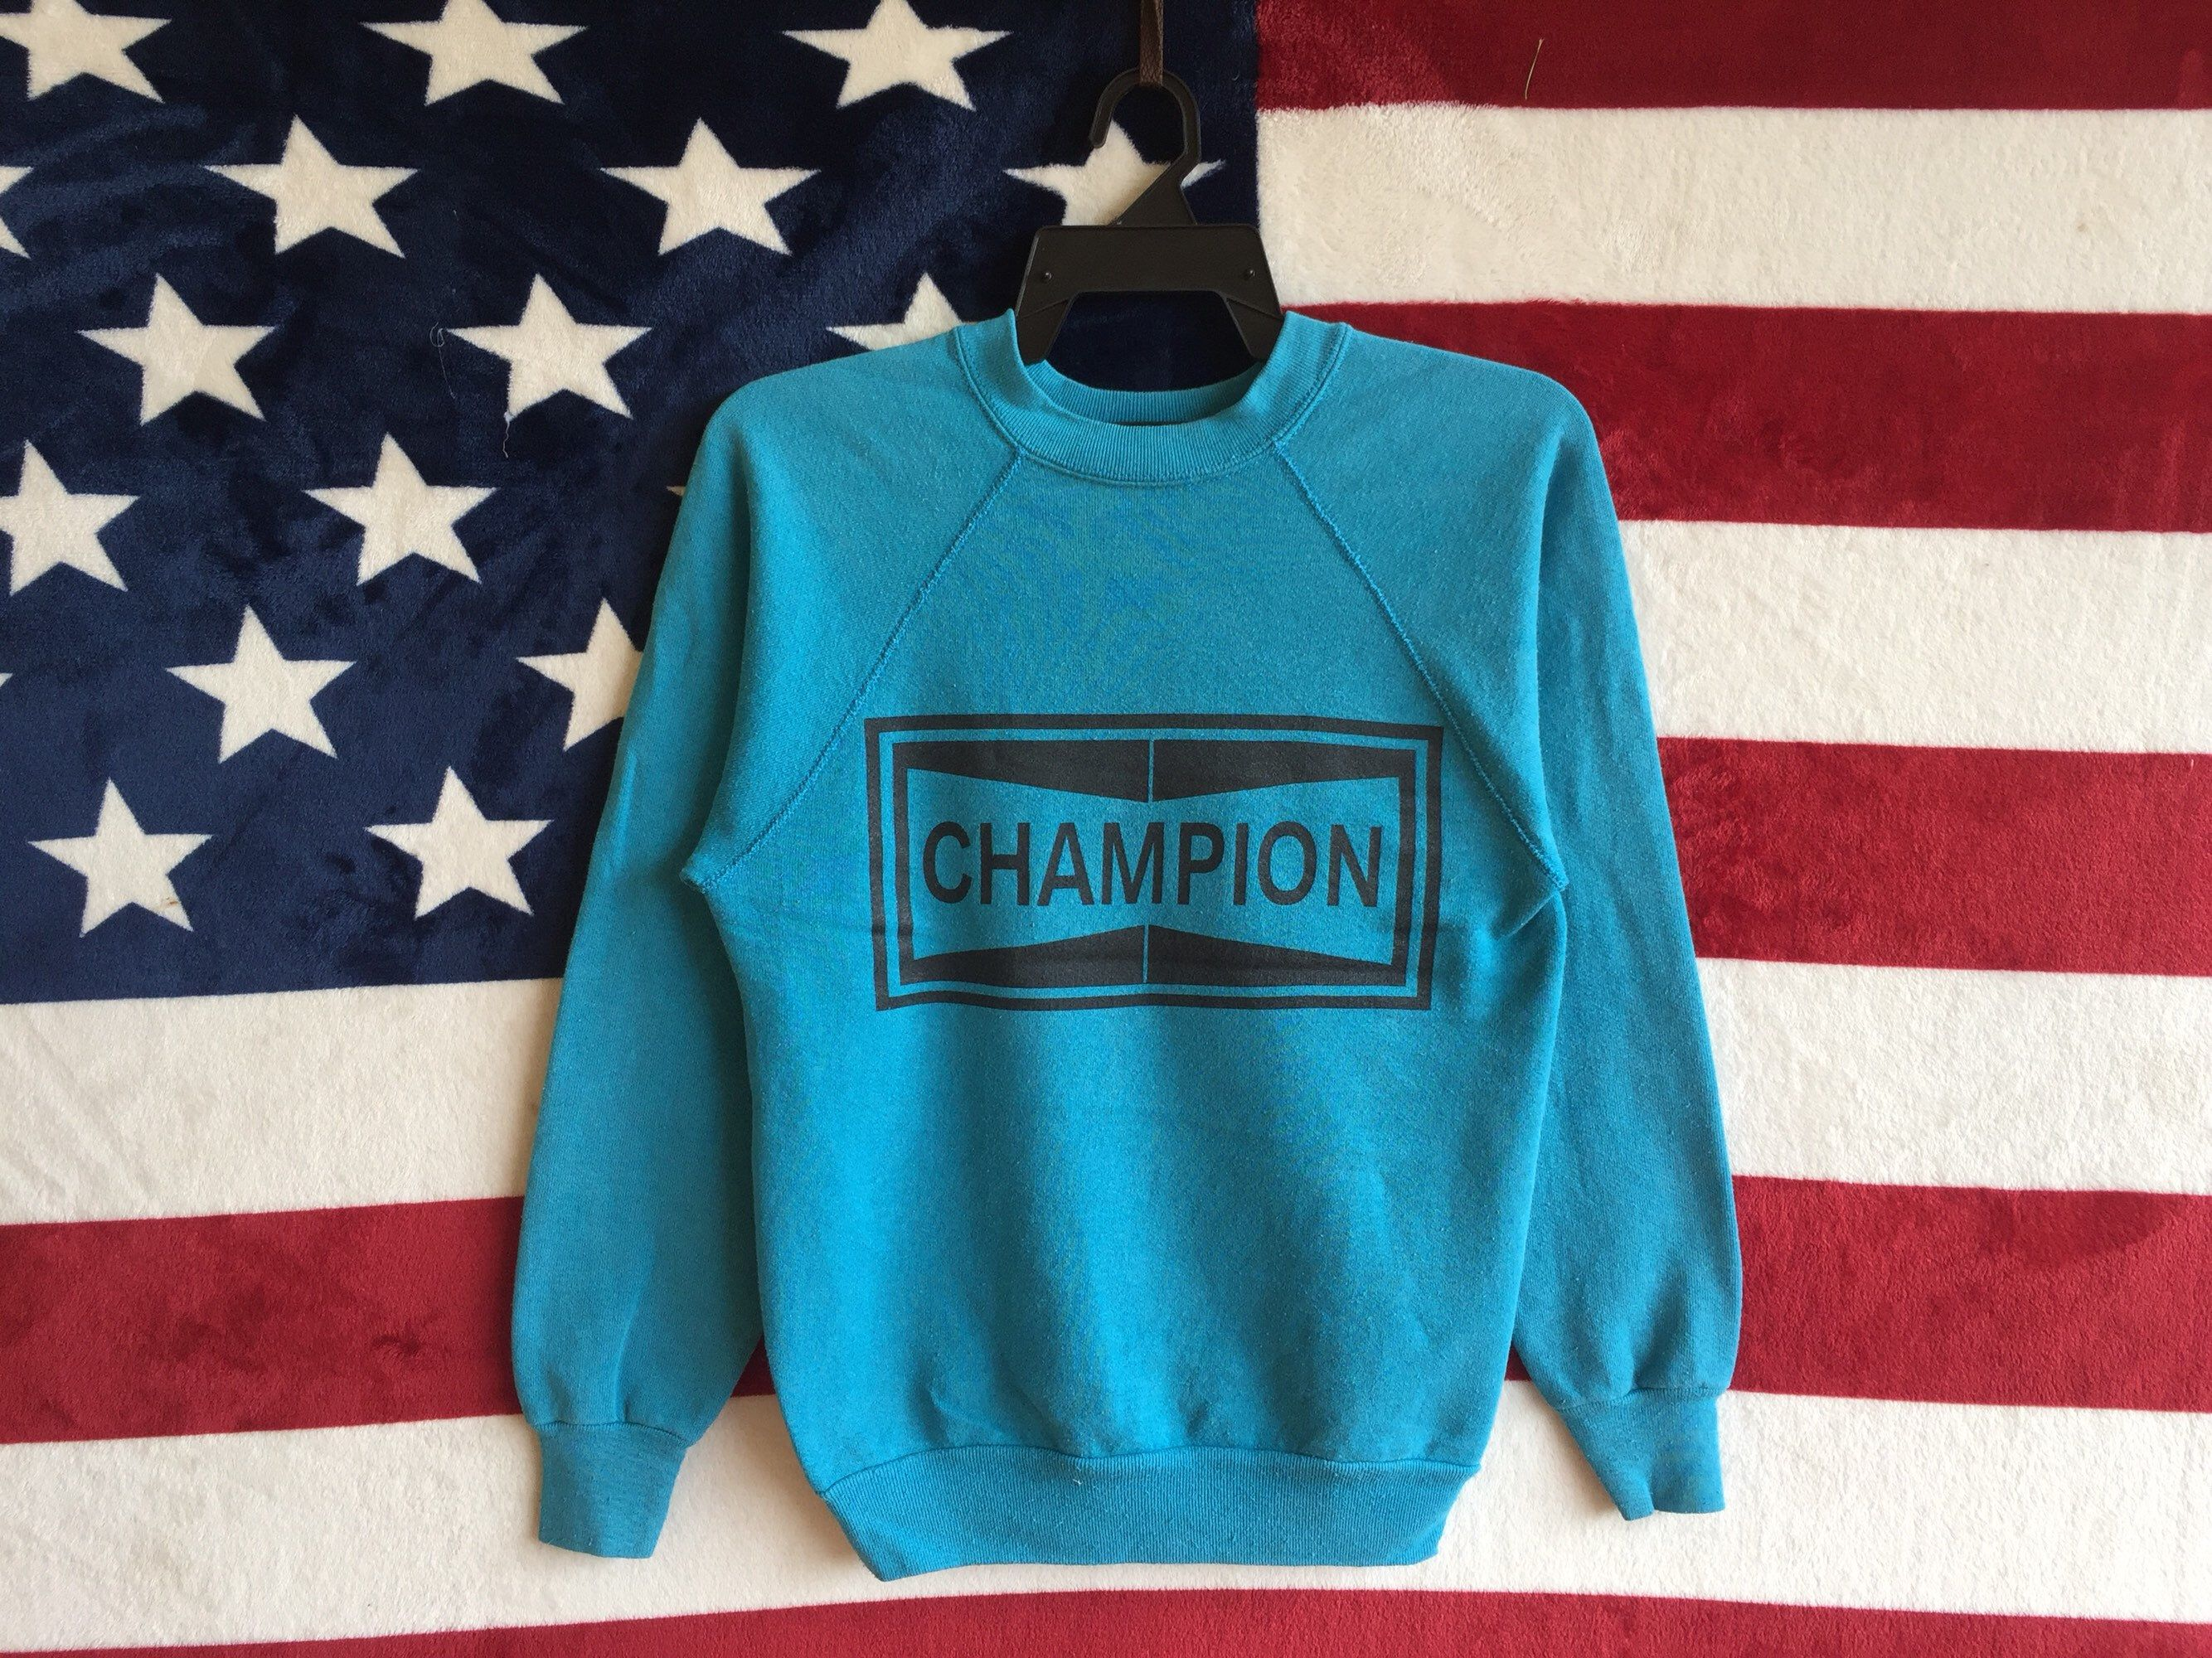 Excited To Share The Latest Addition To My Etsy Shop Vintage 80s Champion Spark Plugs Sweatshirt Turquoise Blue Chapion Trending Outfits Clothes Sweatshirts [ 2000 x 2668 Pixel ]